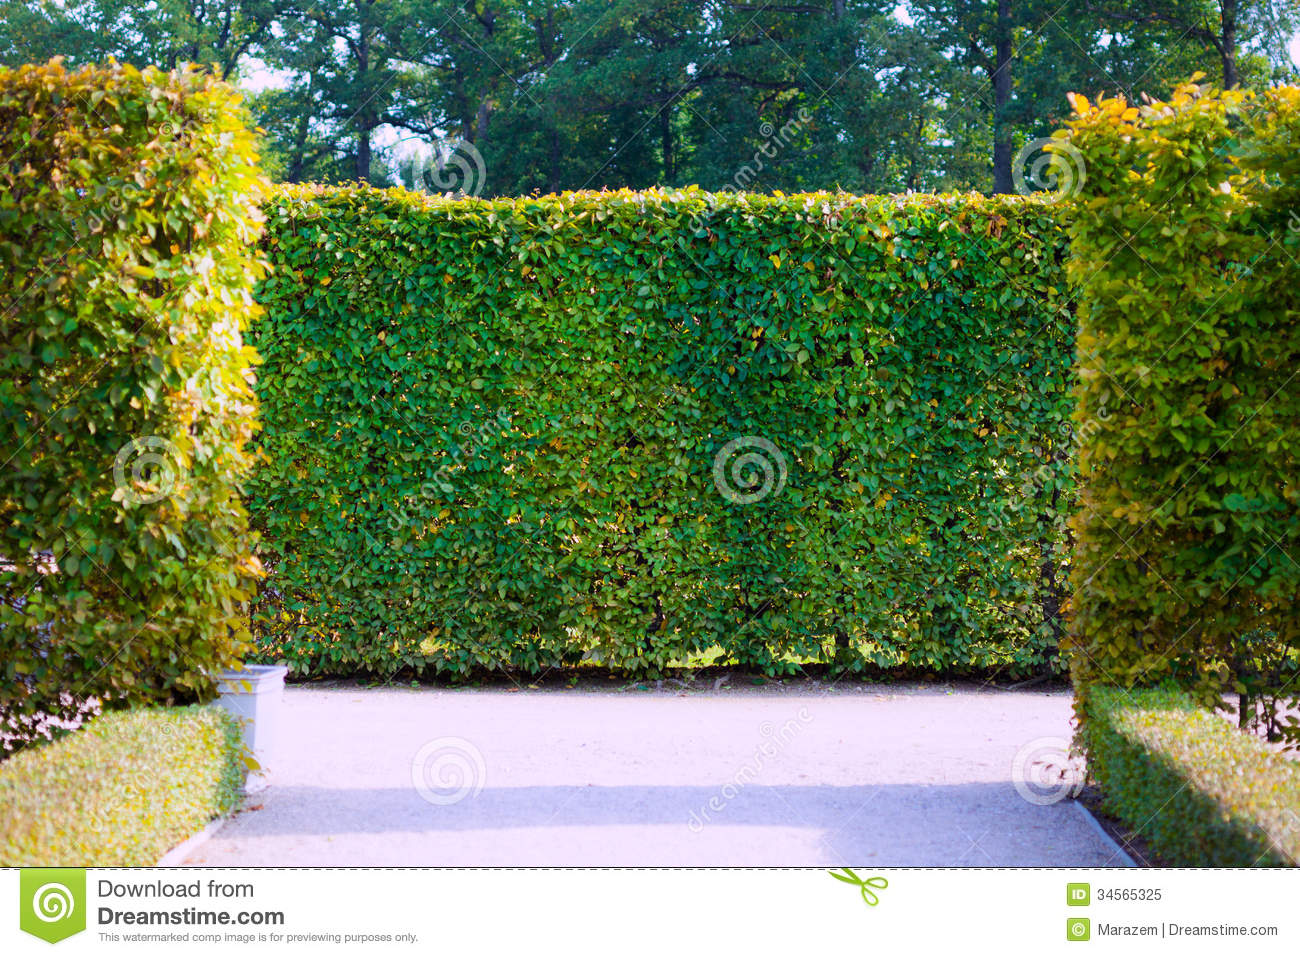 Awesome Royalty Free Stock Photo. Download Garden Bushes ...